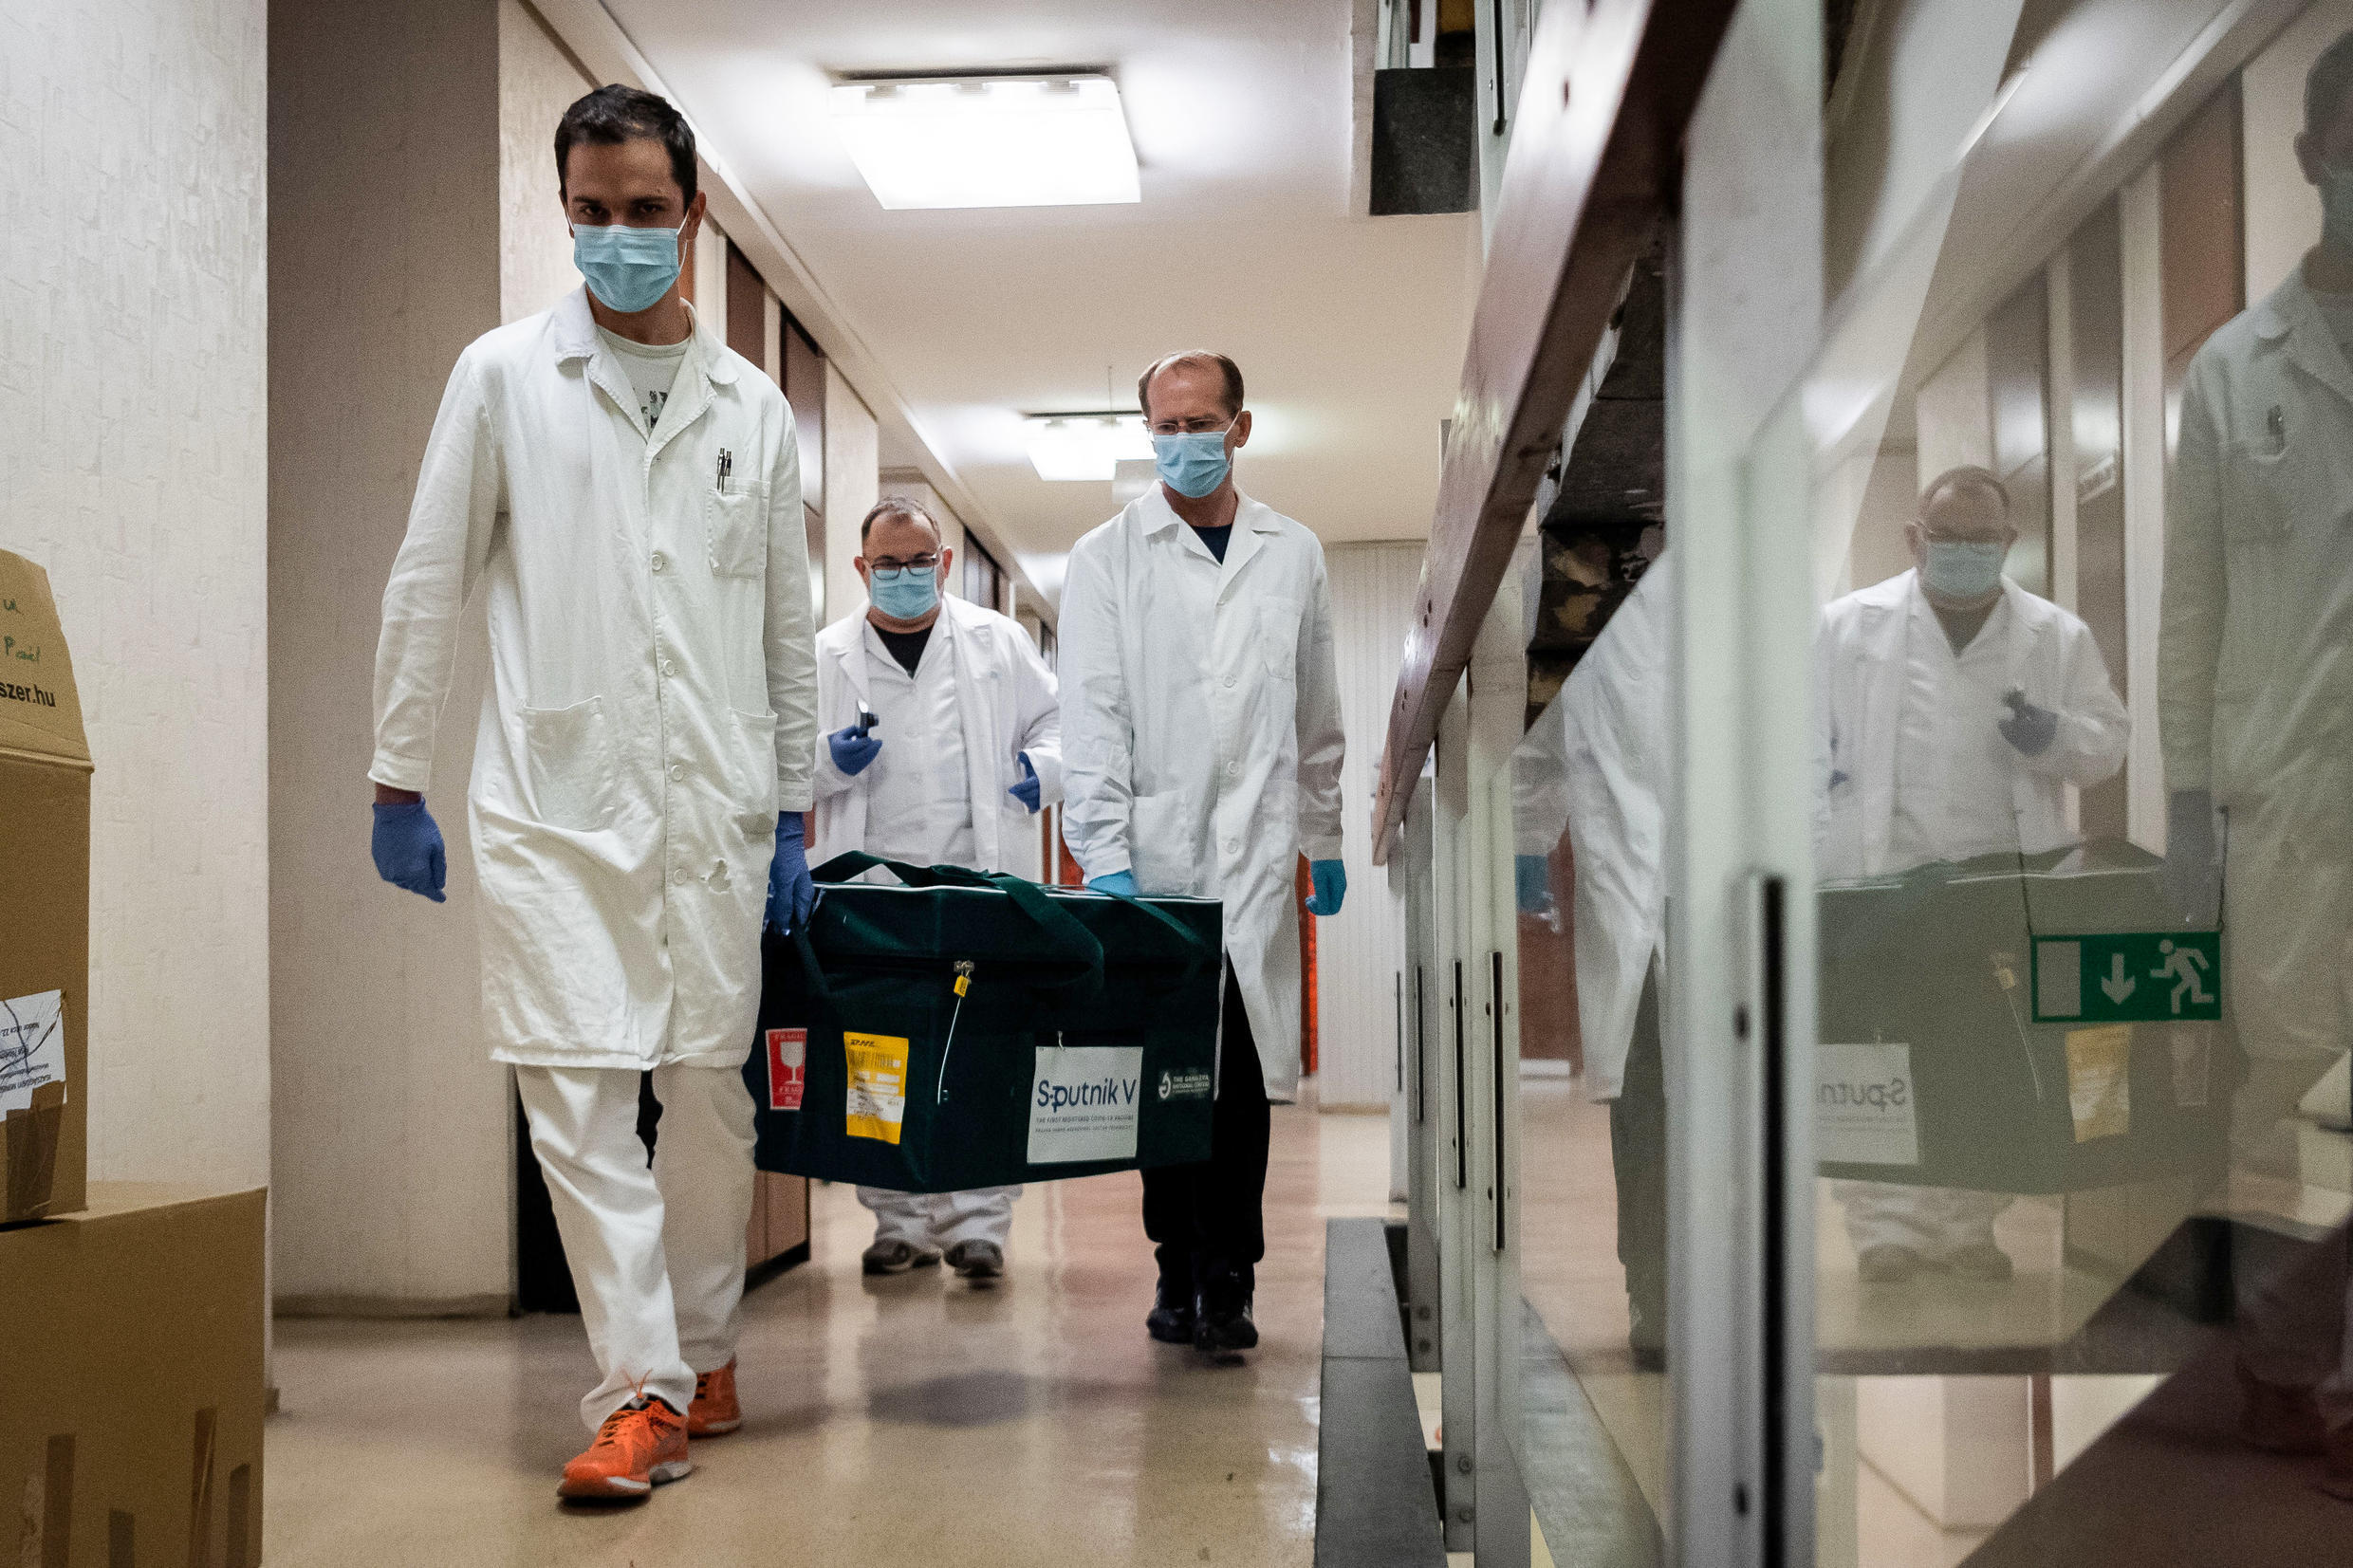 A delivery of Russia's Sputnik V coronavirus vaccine arrived in Hungary last week